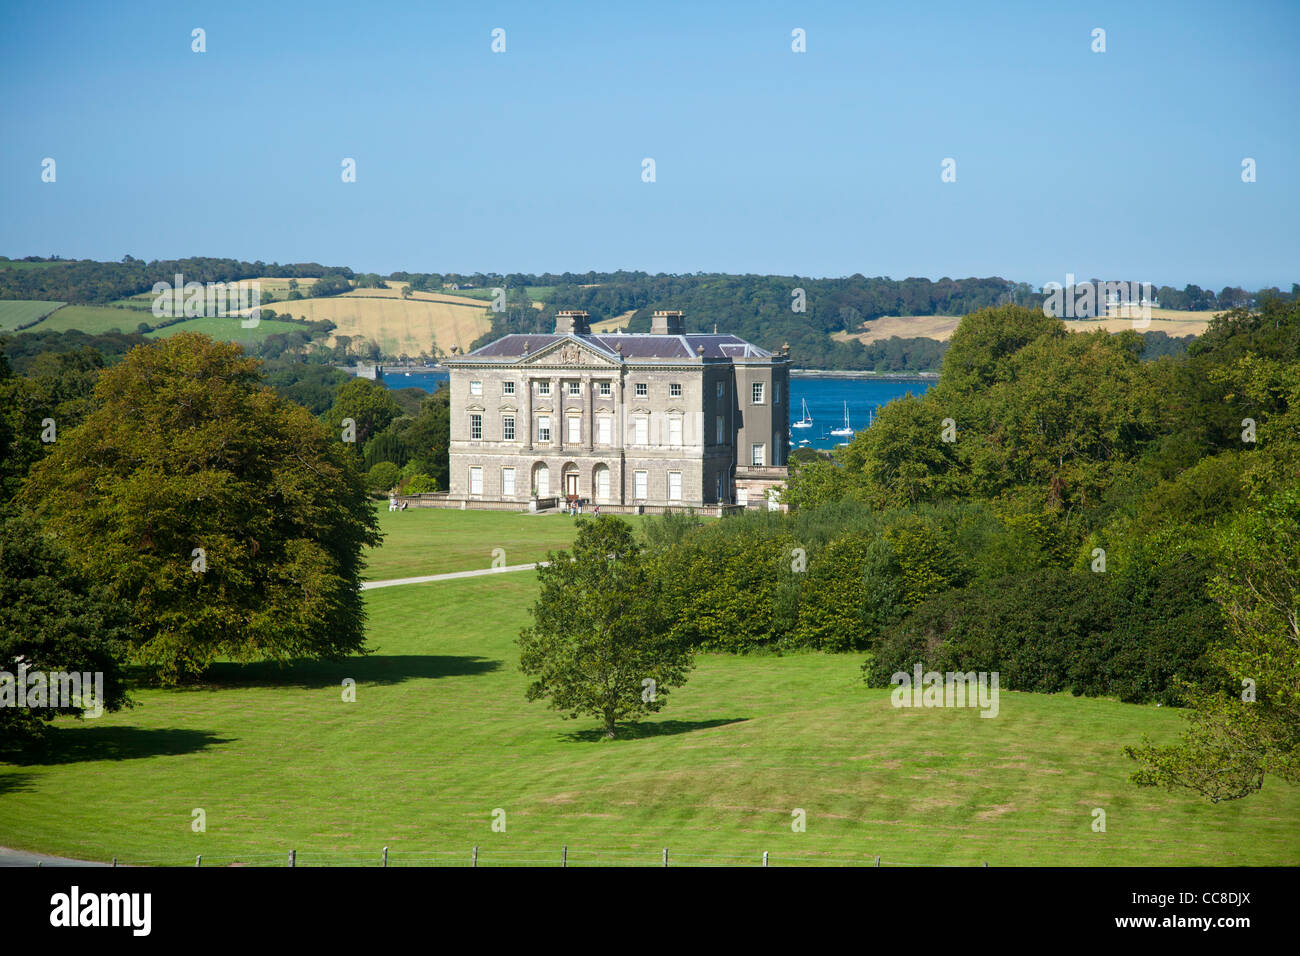 The 18th century manor house of Castle Ward, Strangford Lough, County Down, Northern Ireland. Stock Photo